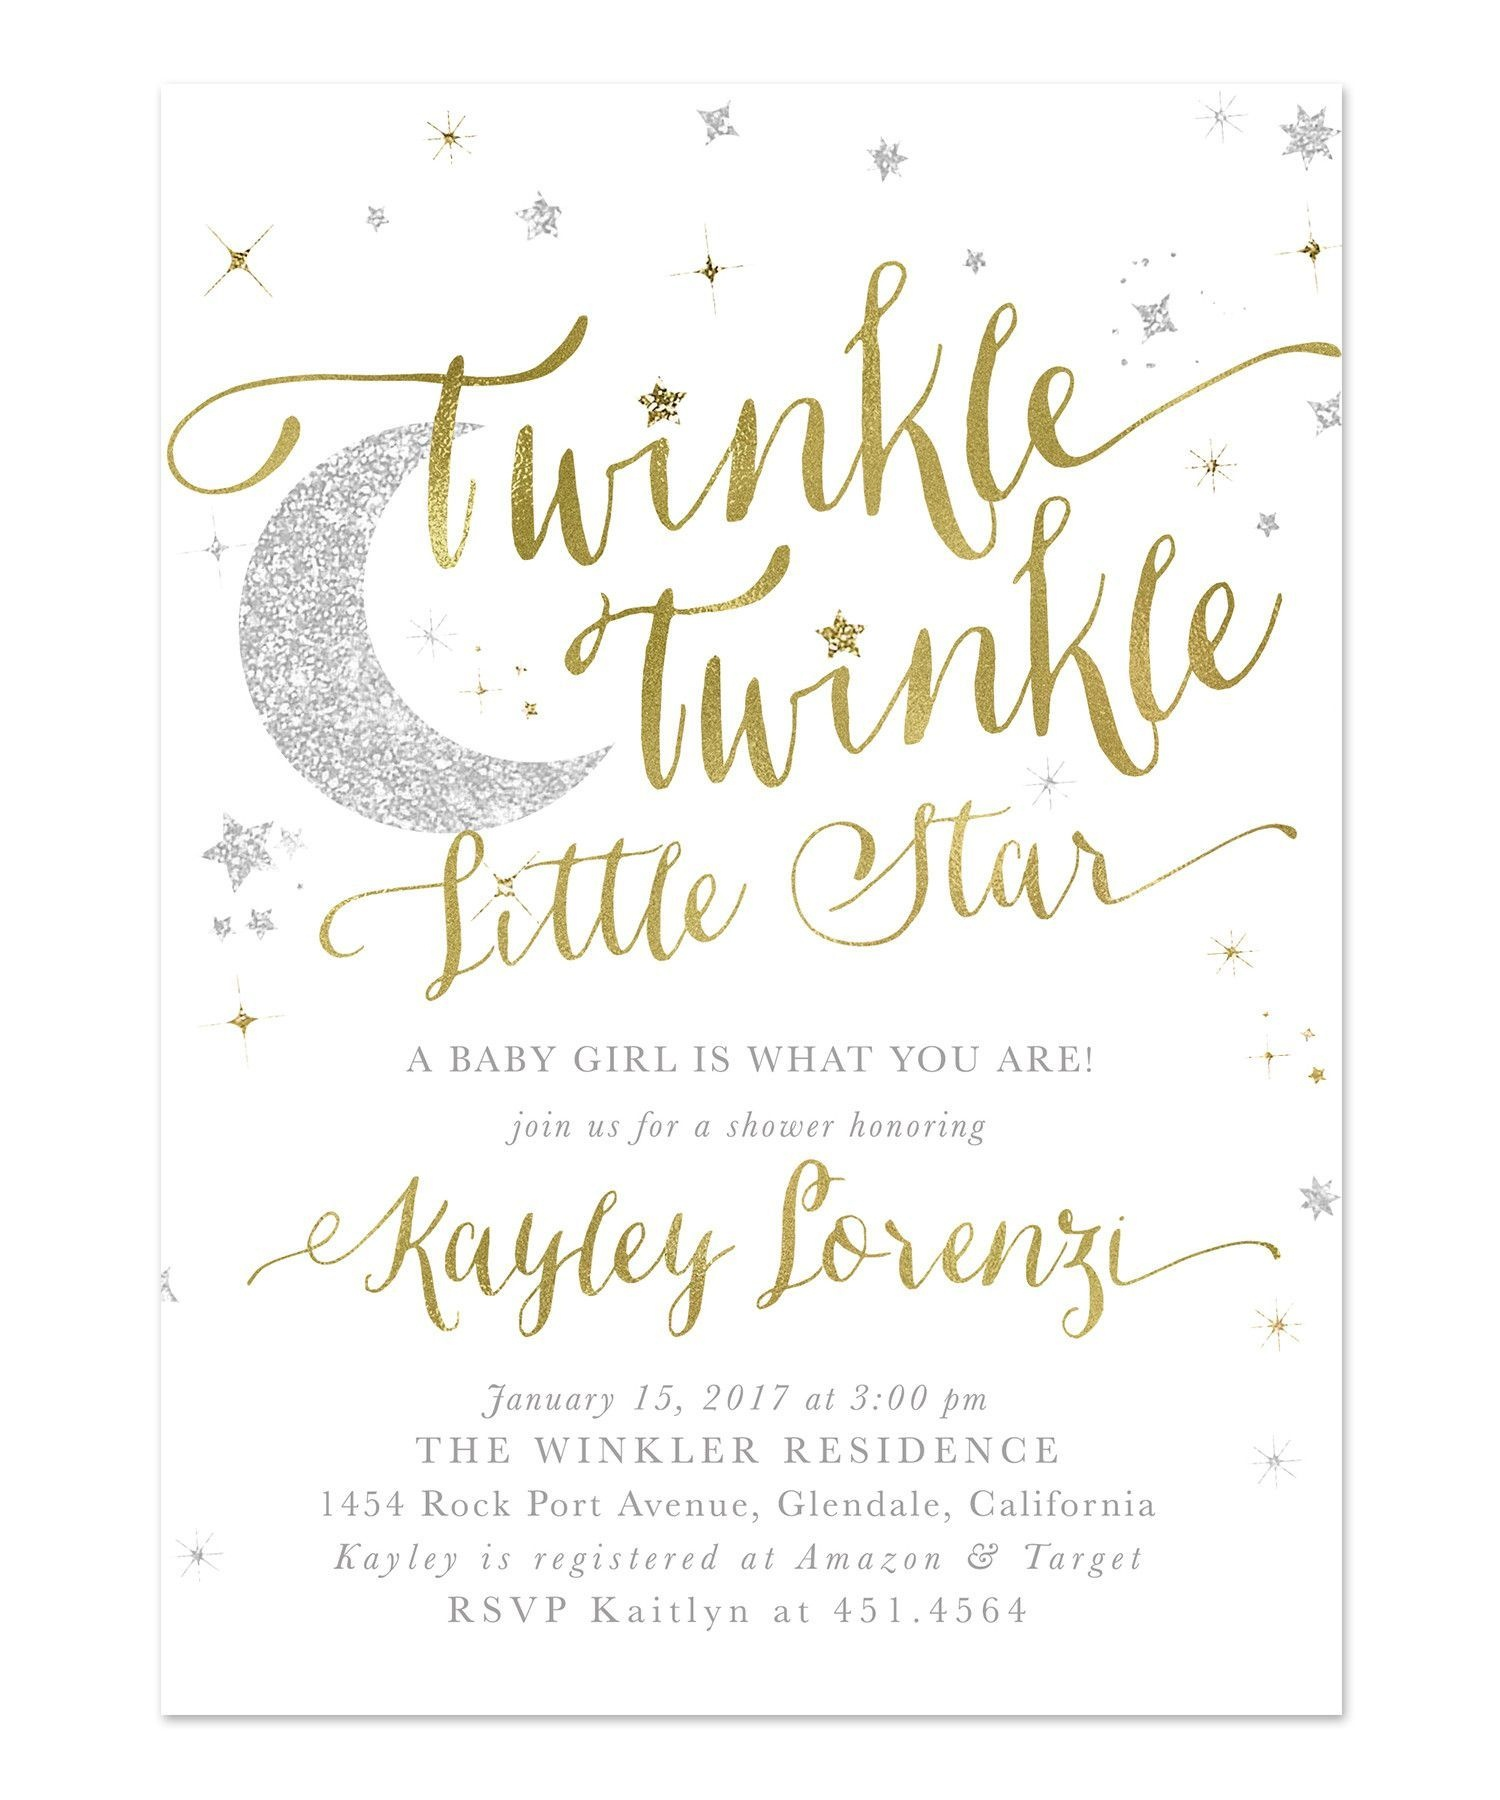 Twinkle Twinkle Little Star Boy Or Girl Baby Shower Invitation - Free Printable Twinkle Twinkle Little Star Baby Shower Invitations